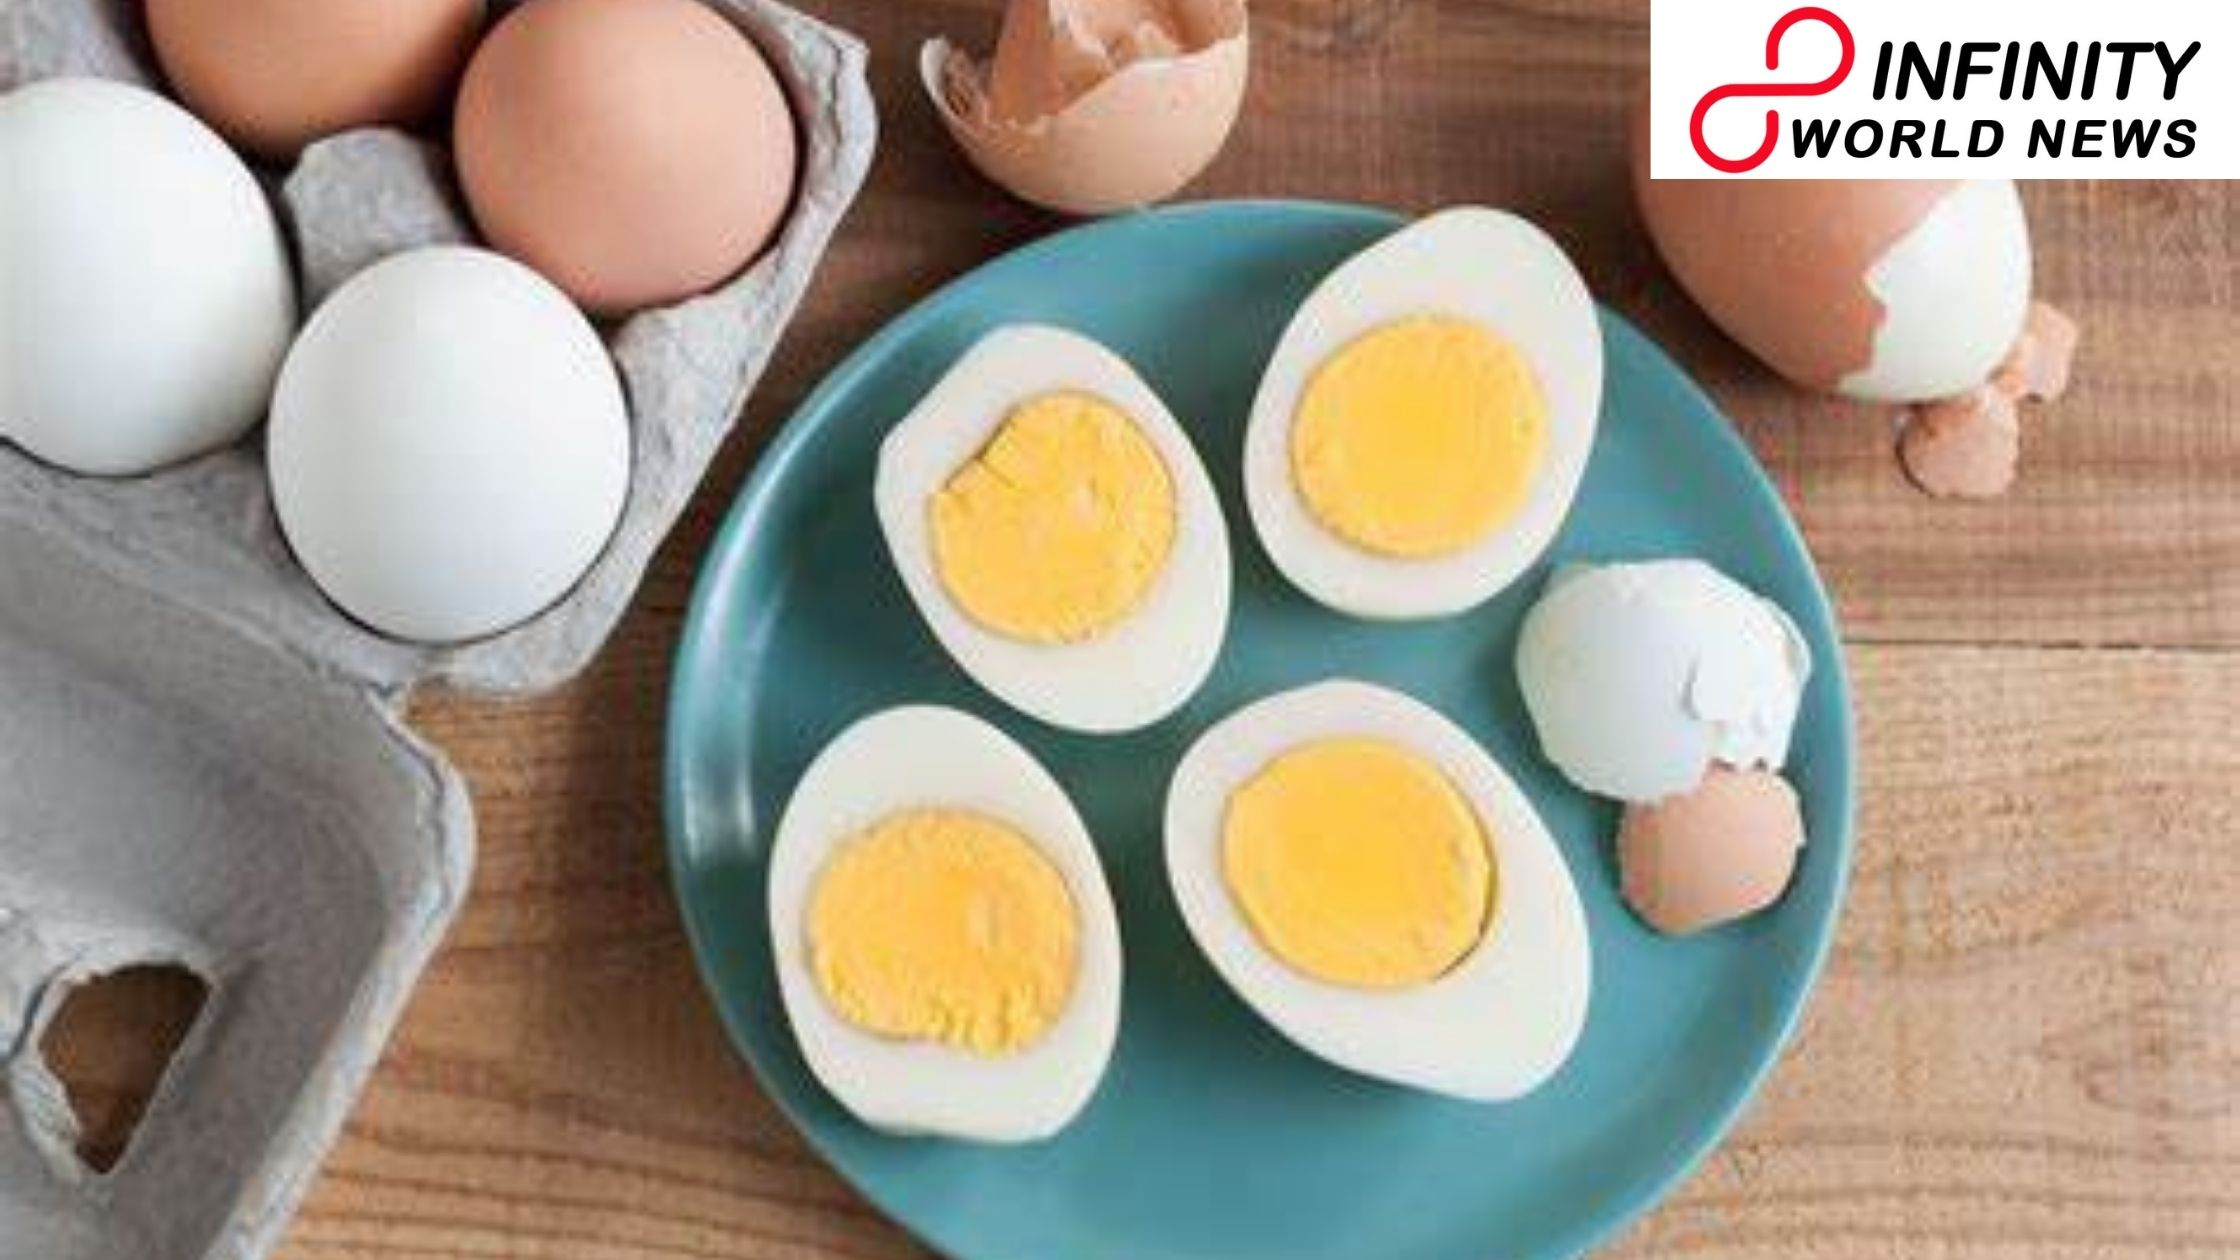 Study sees eating too many numbers of eggs may prepare for diabetes